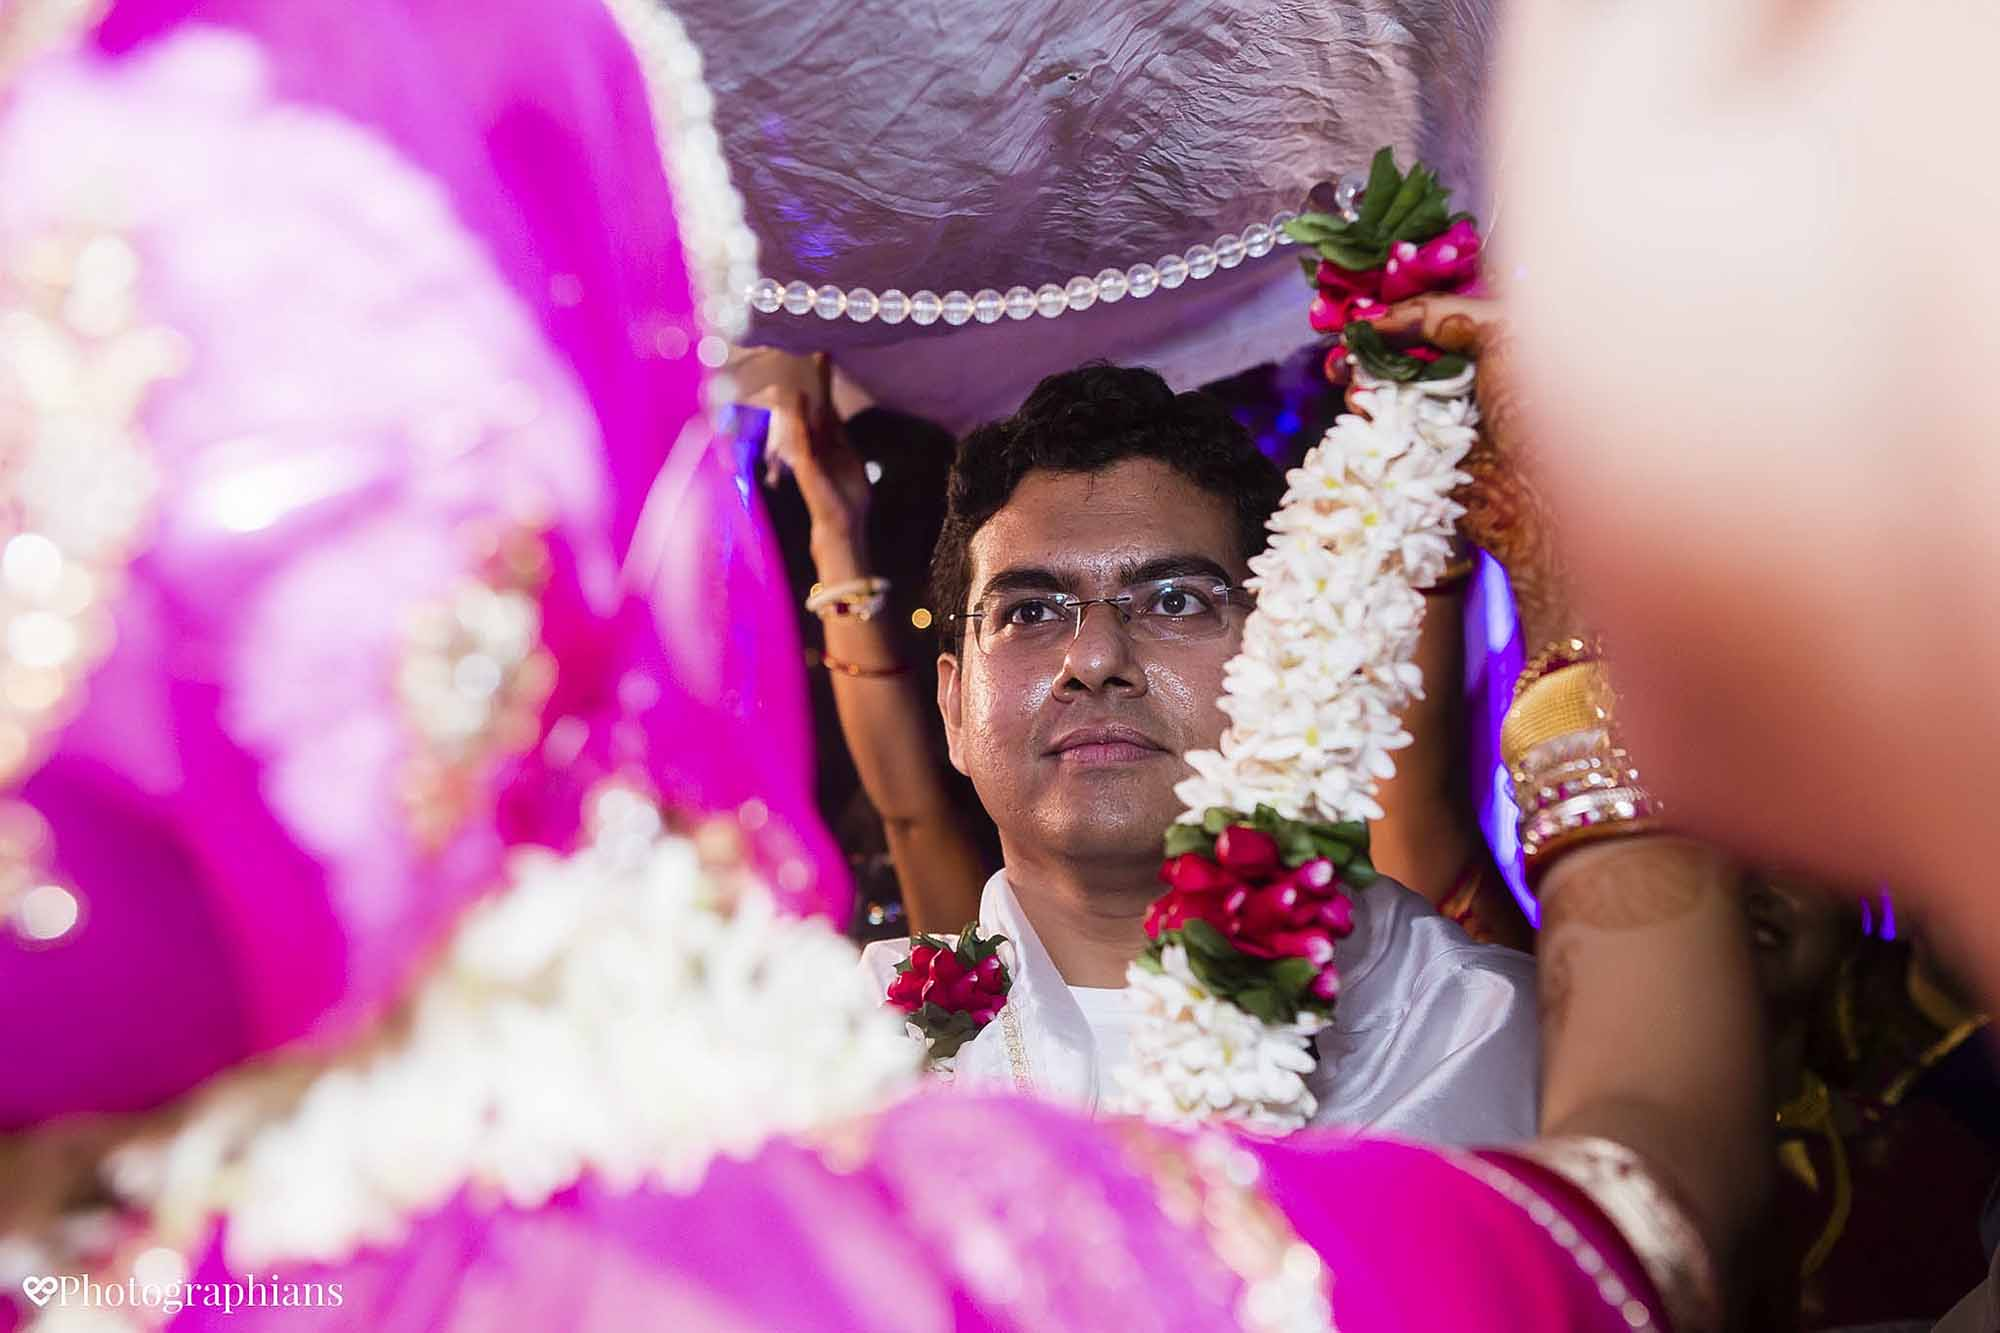 Bengali_Wedding_Photography_Kolkata_Photographians_124